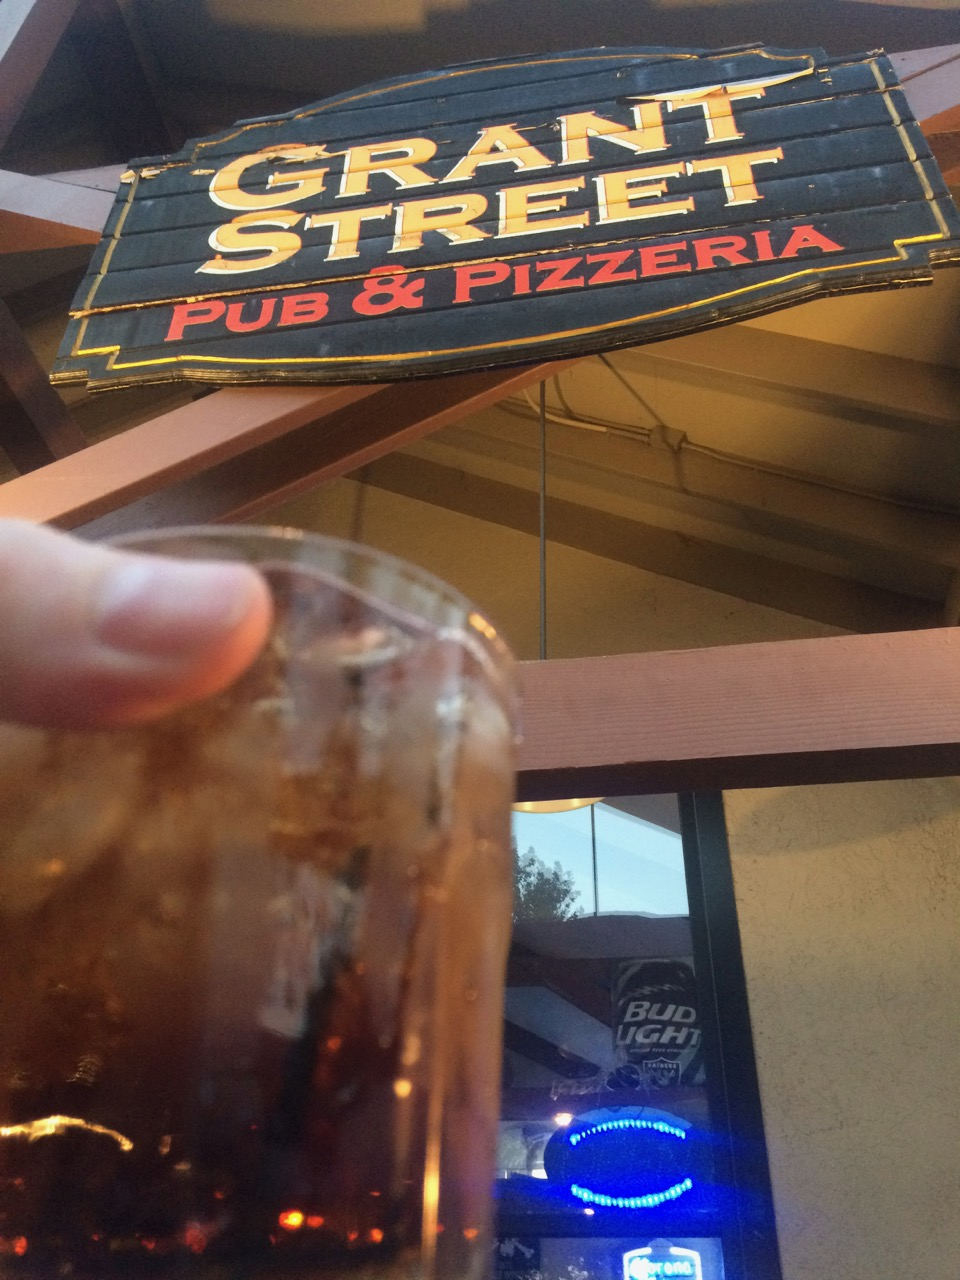 Jack and Cokes at Grant Street: Concord CA – August 4 2017